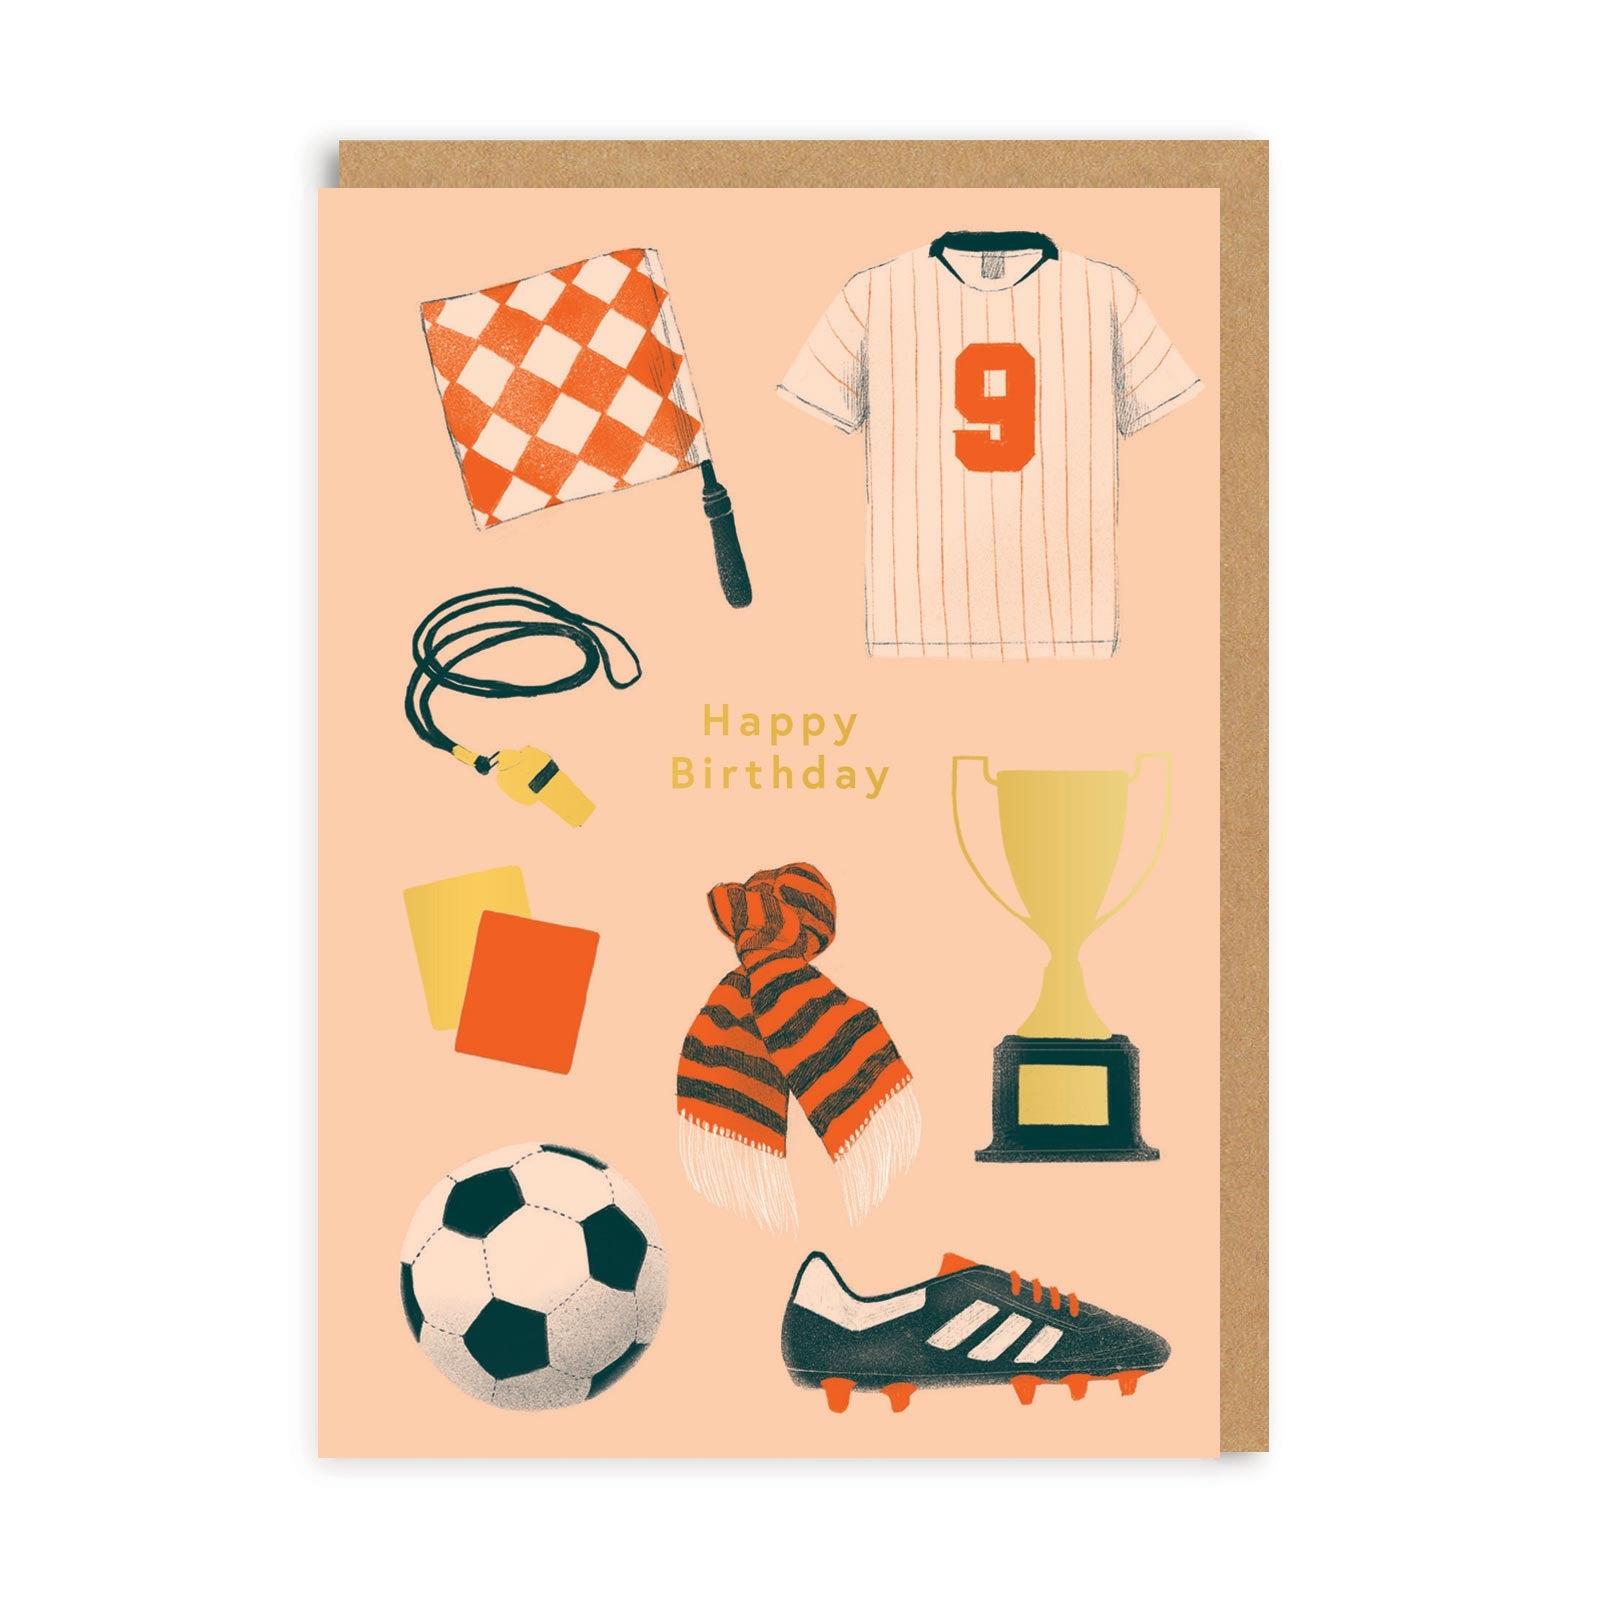 Happy Birthday Football Greeting Card